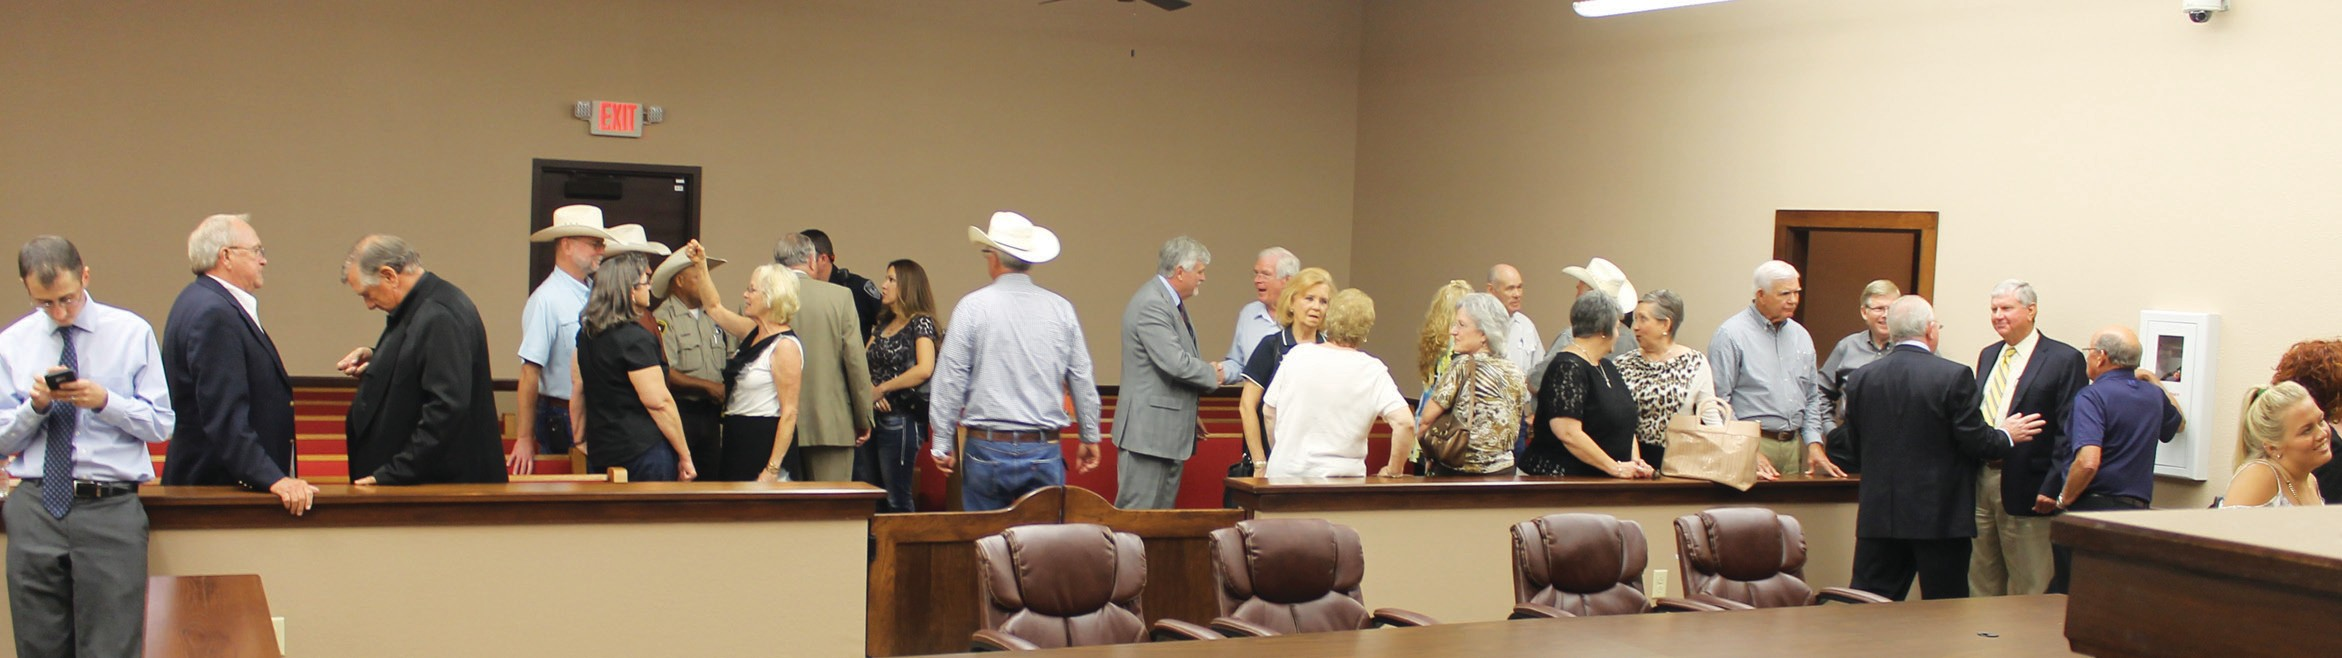 Visitors during open house inside the new Lytle Precinct 2 Justice of the Peace building on Thursday, September 10.